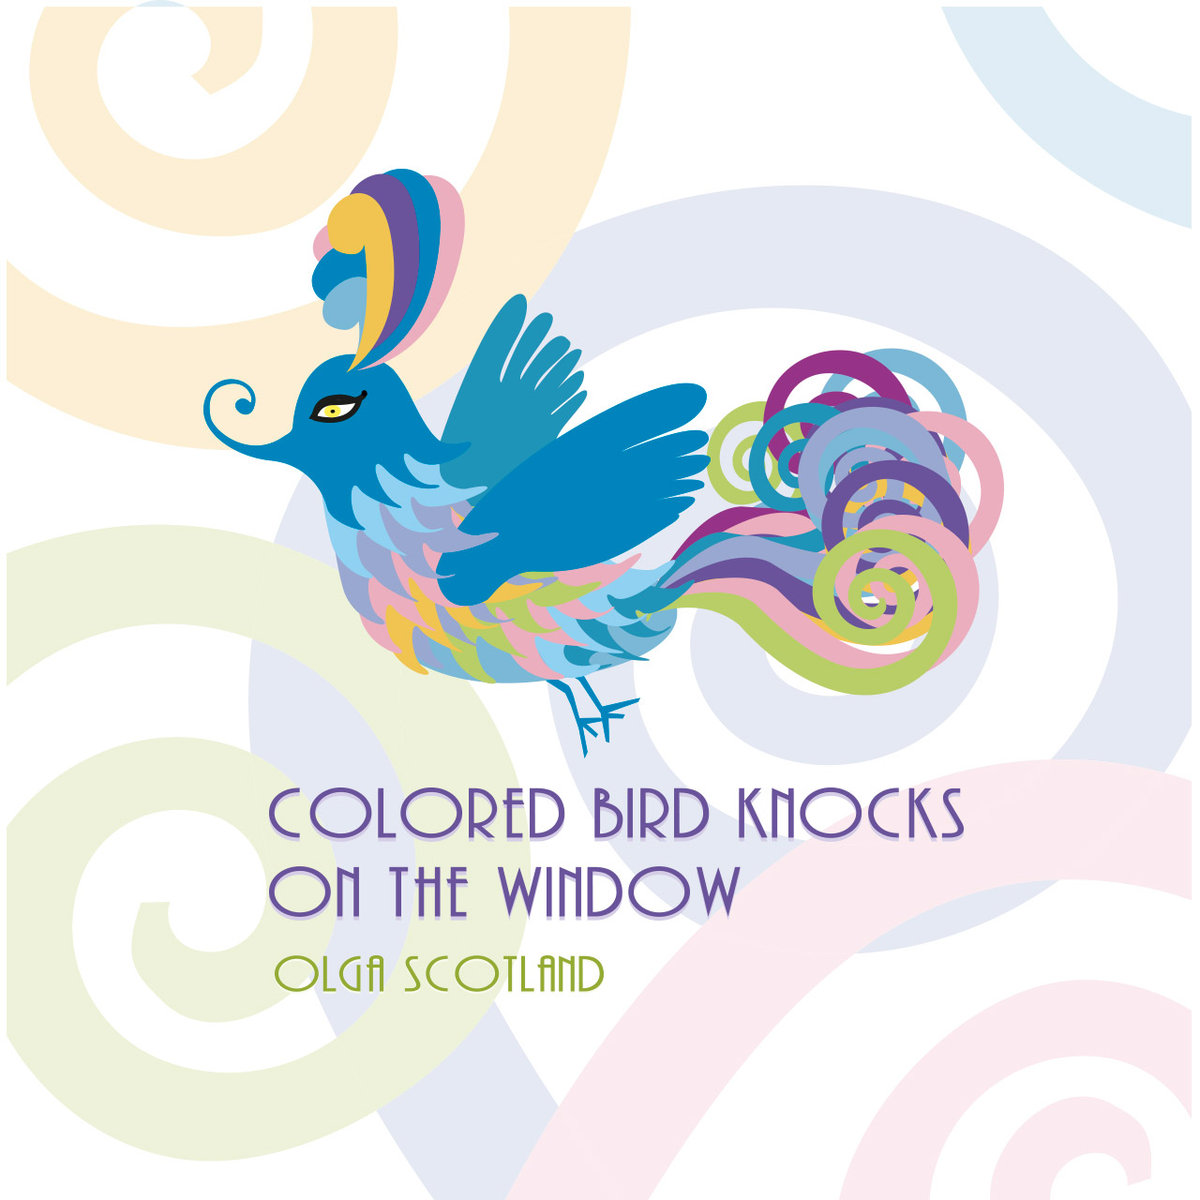 Olga Scotland - Colored Bird Knocks On The Window (artwork)